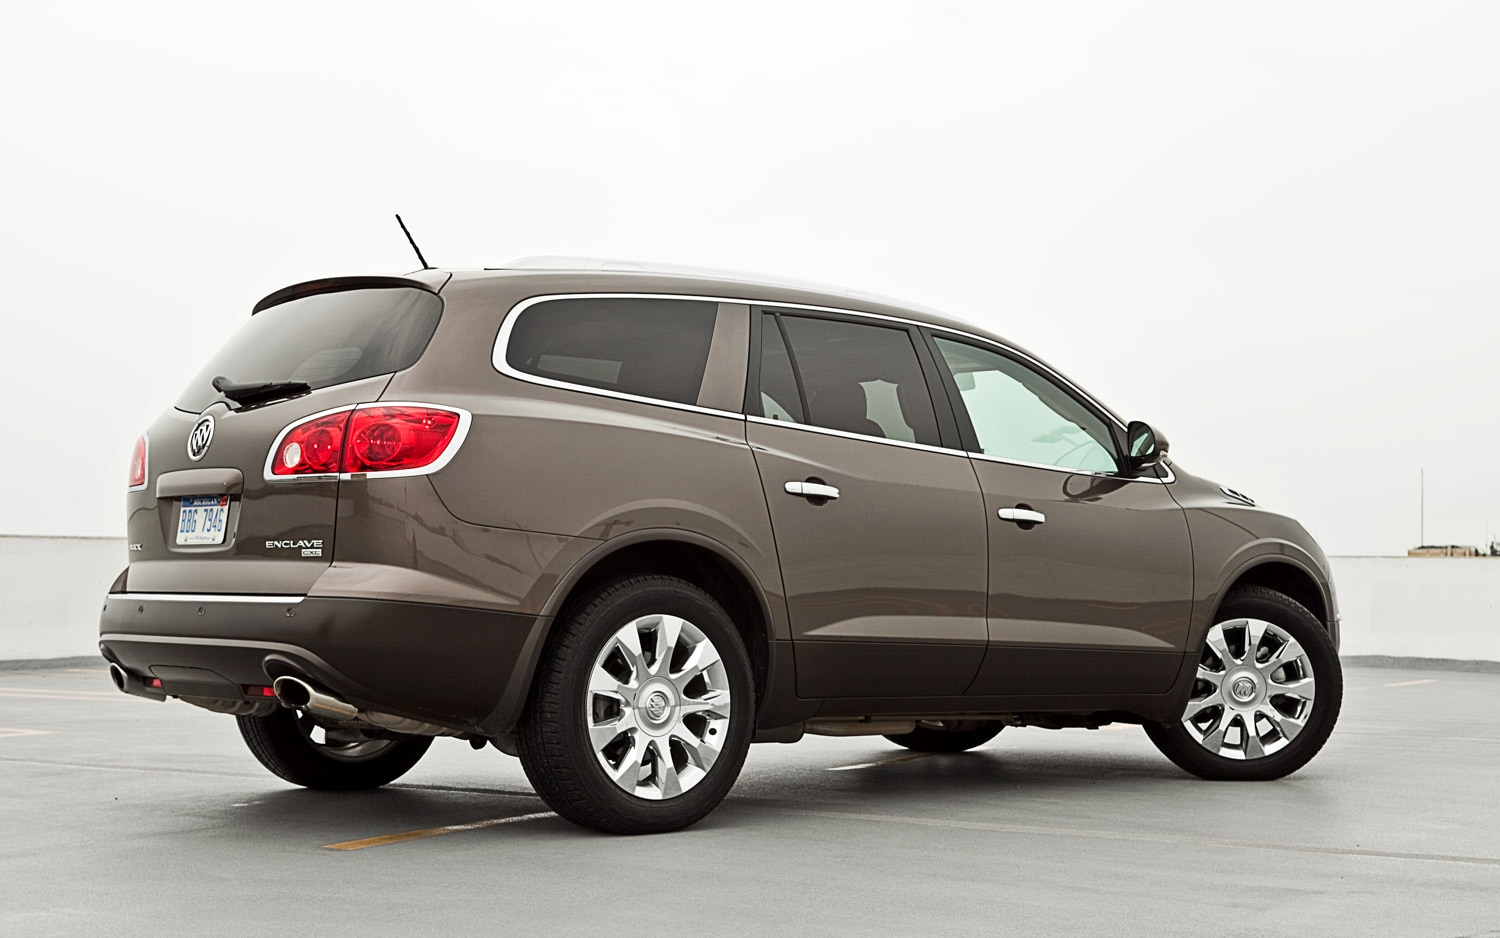 2011 buick enclave cxl-2 awd - editors' notebook - automobile magazine